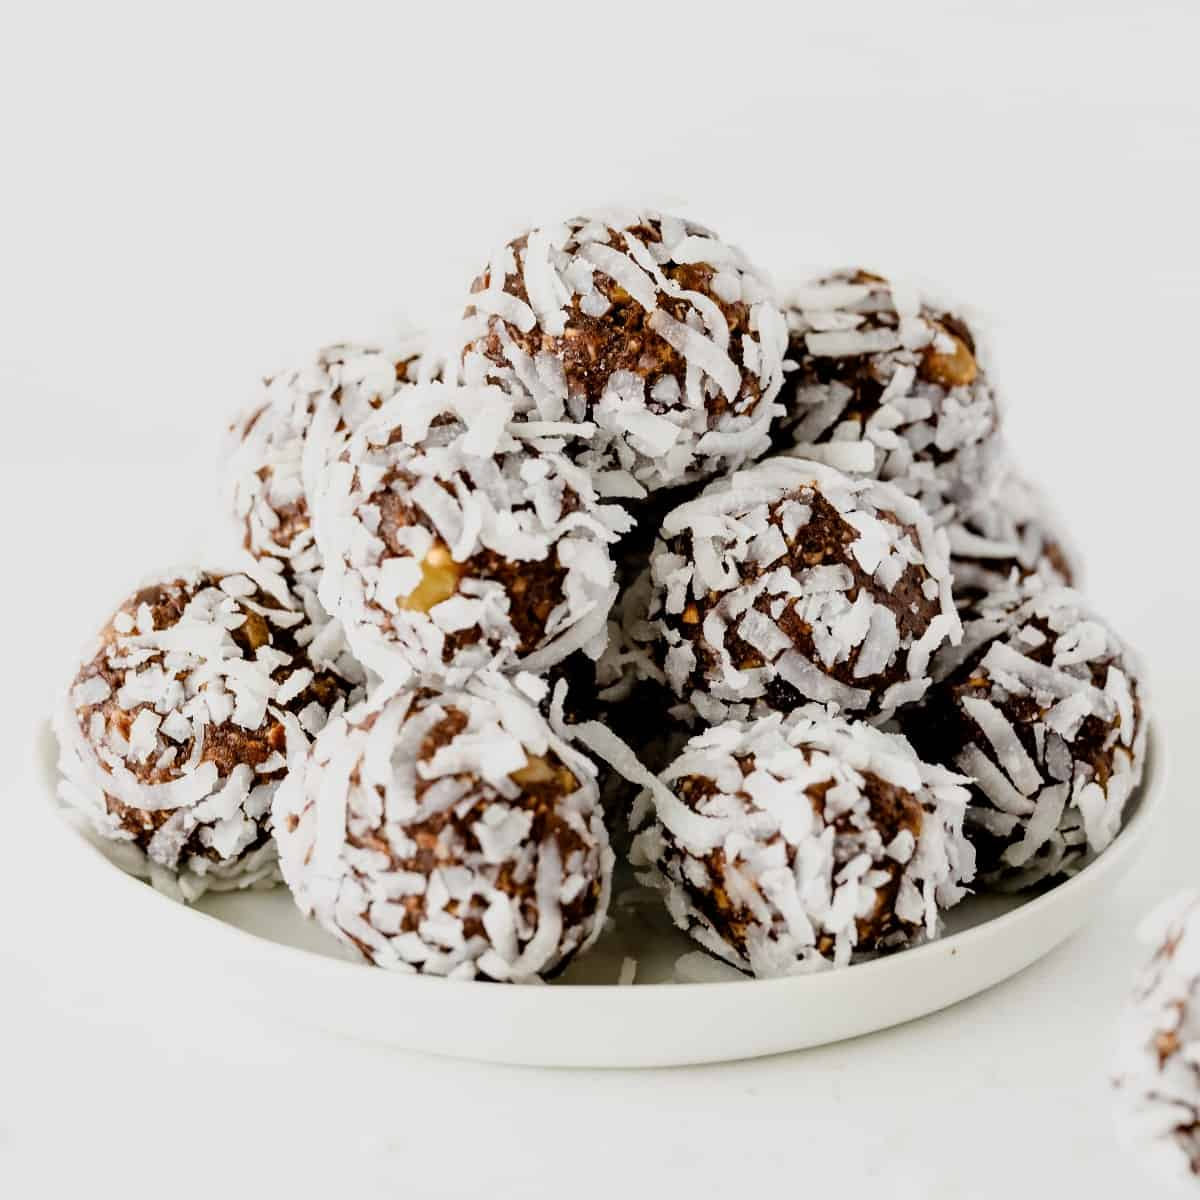 A perfectly centered white plate full of coconut covered chocolate balls